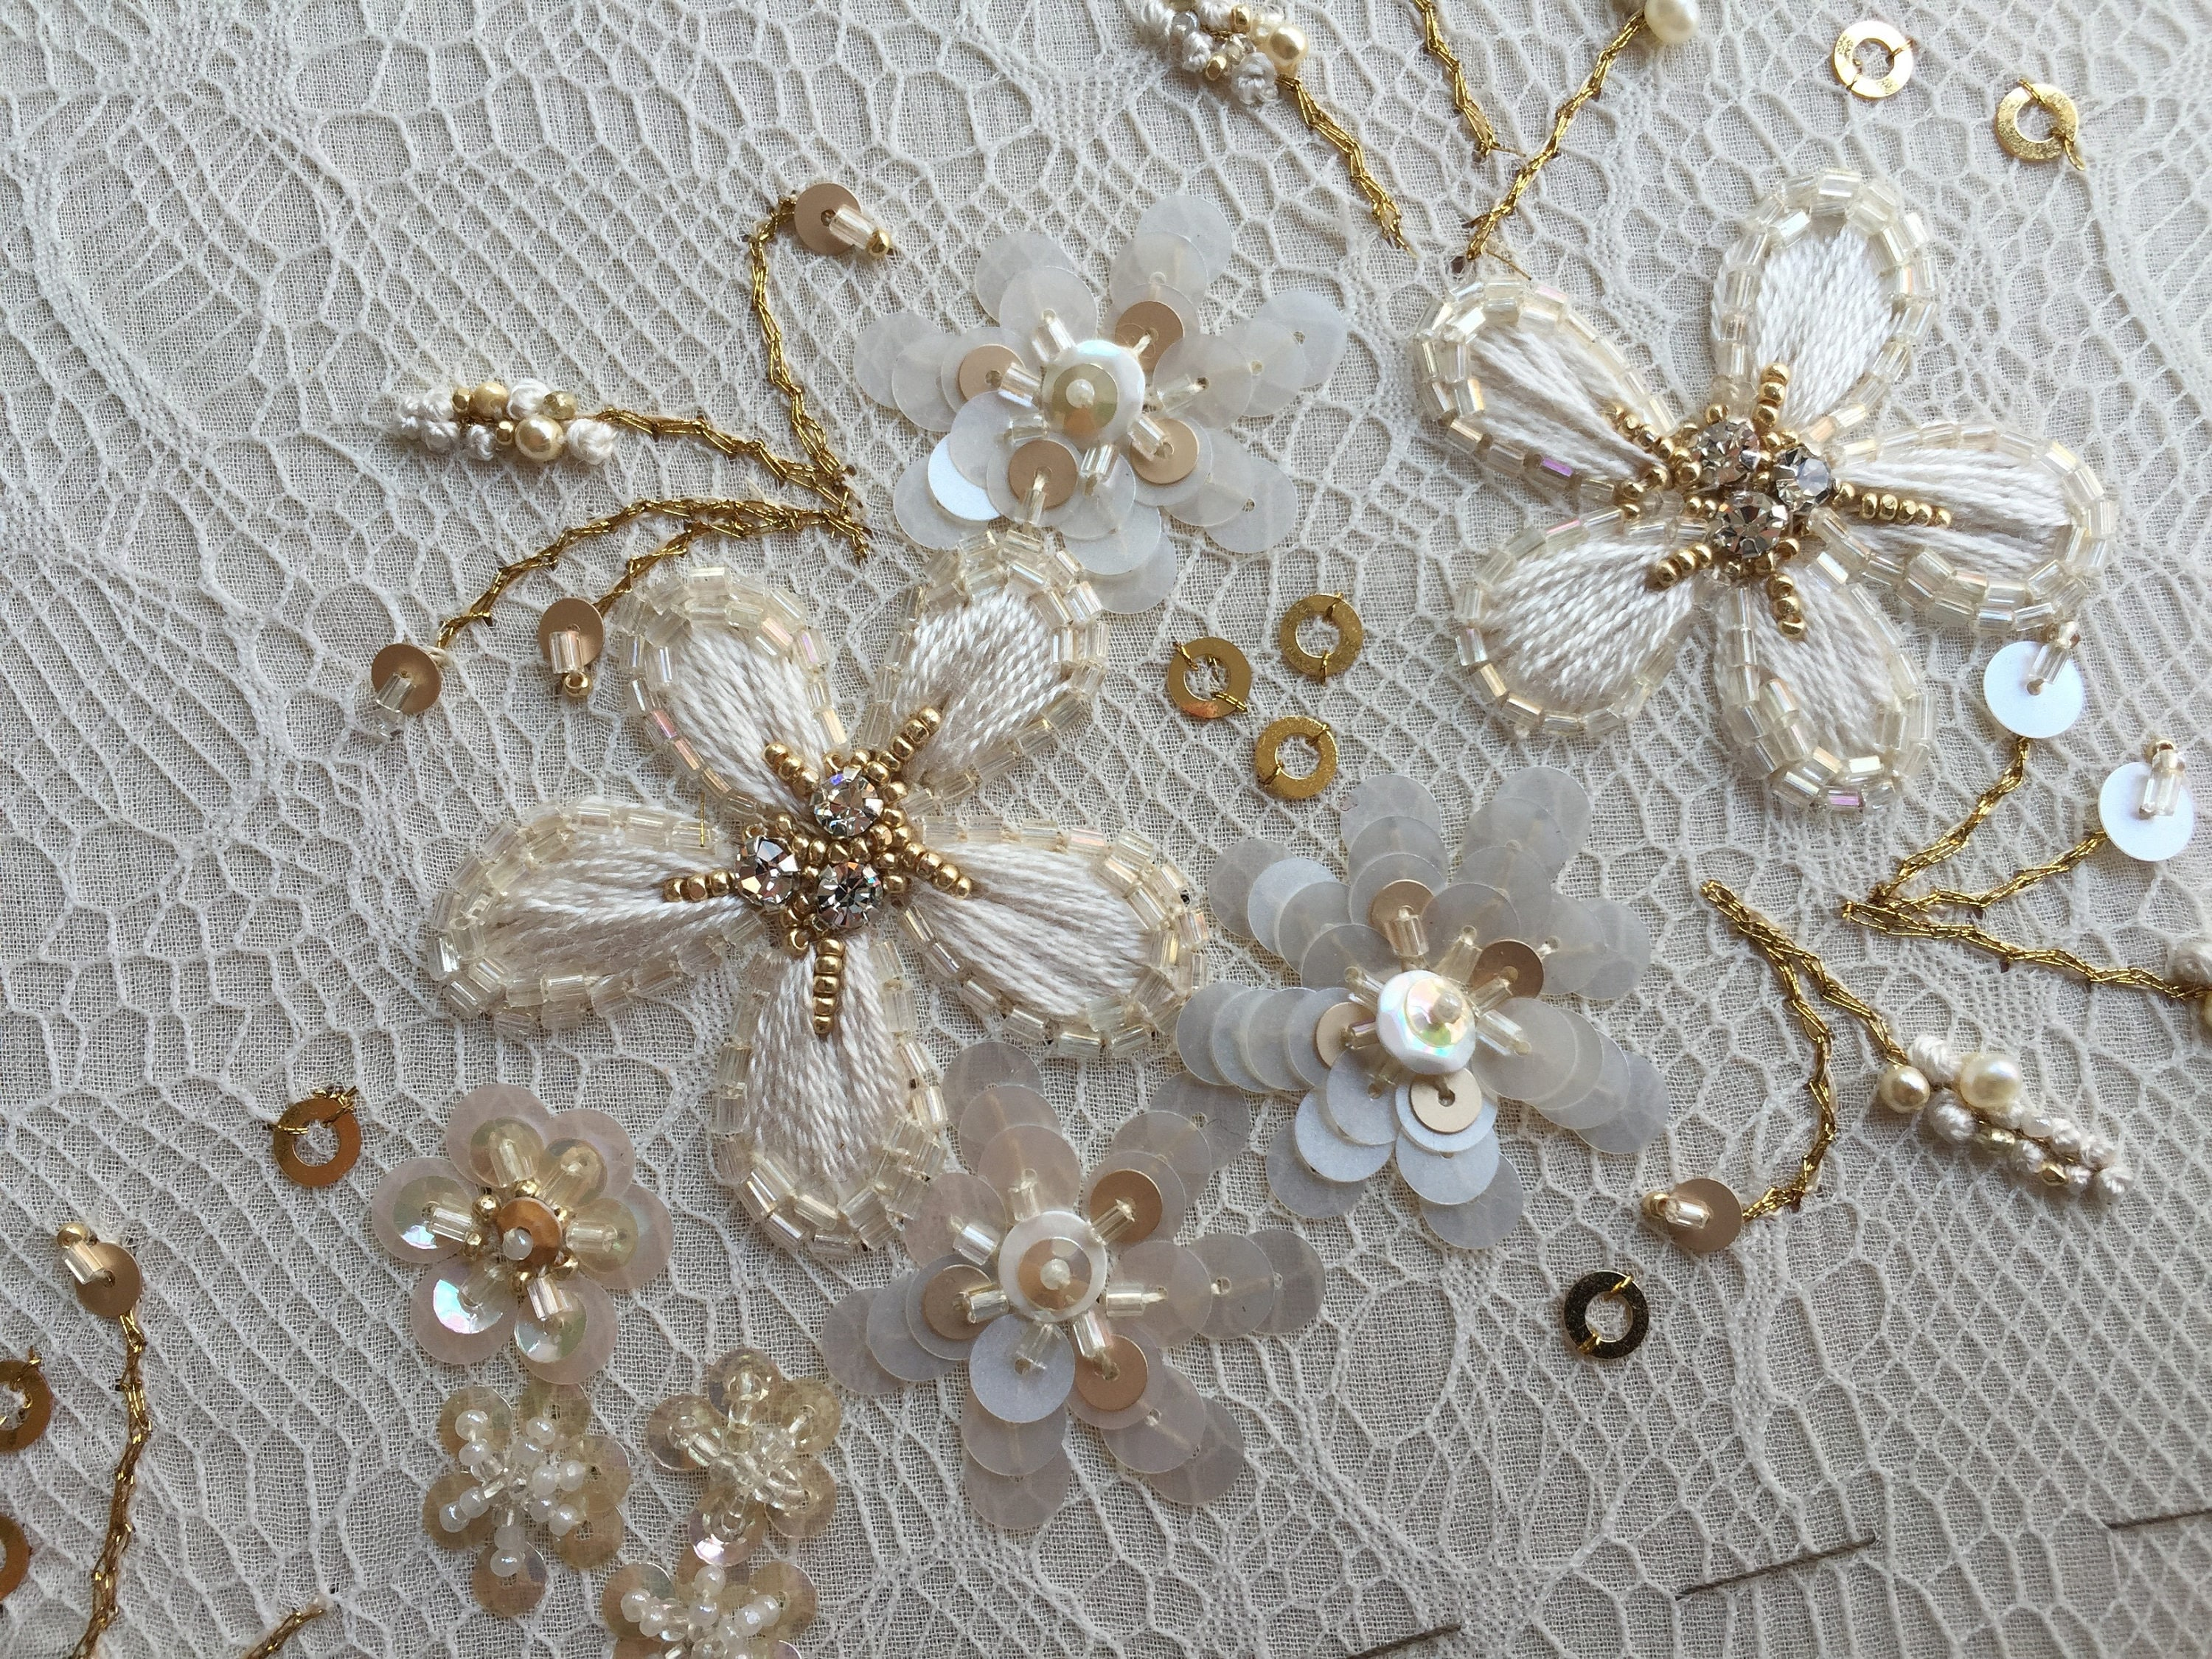 Embroidery Sequins Gold Tambour Embroidery Tambour Hook Lesage